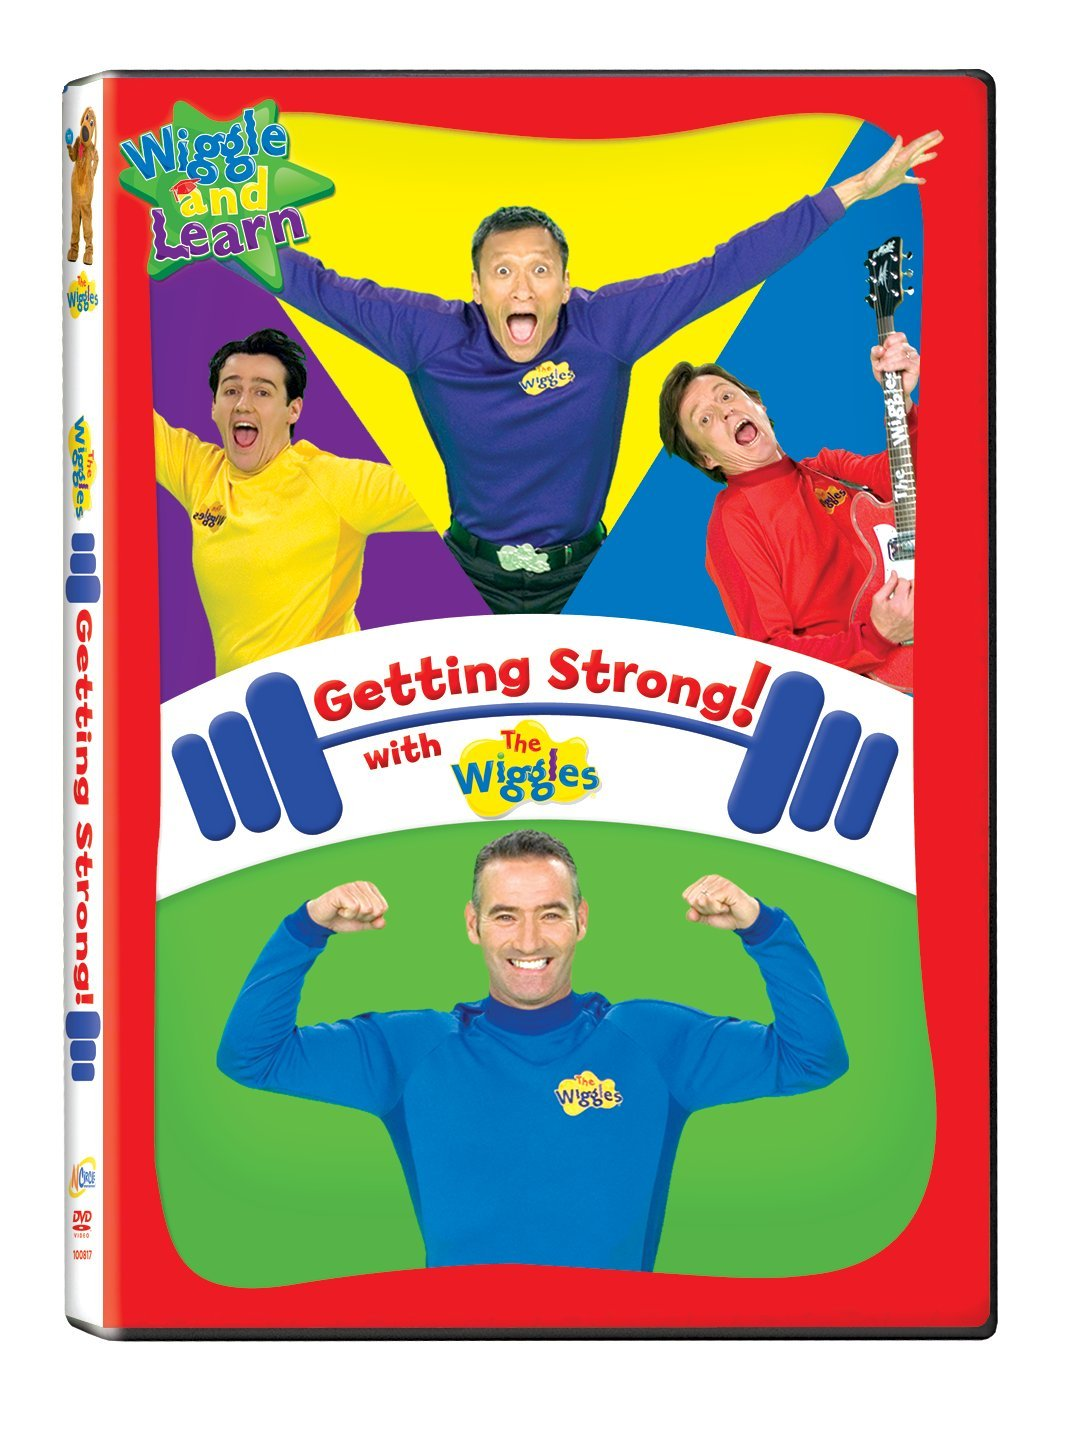 Getting Strong with The Wiggles